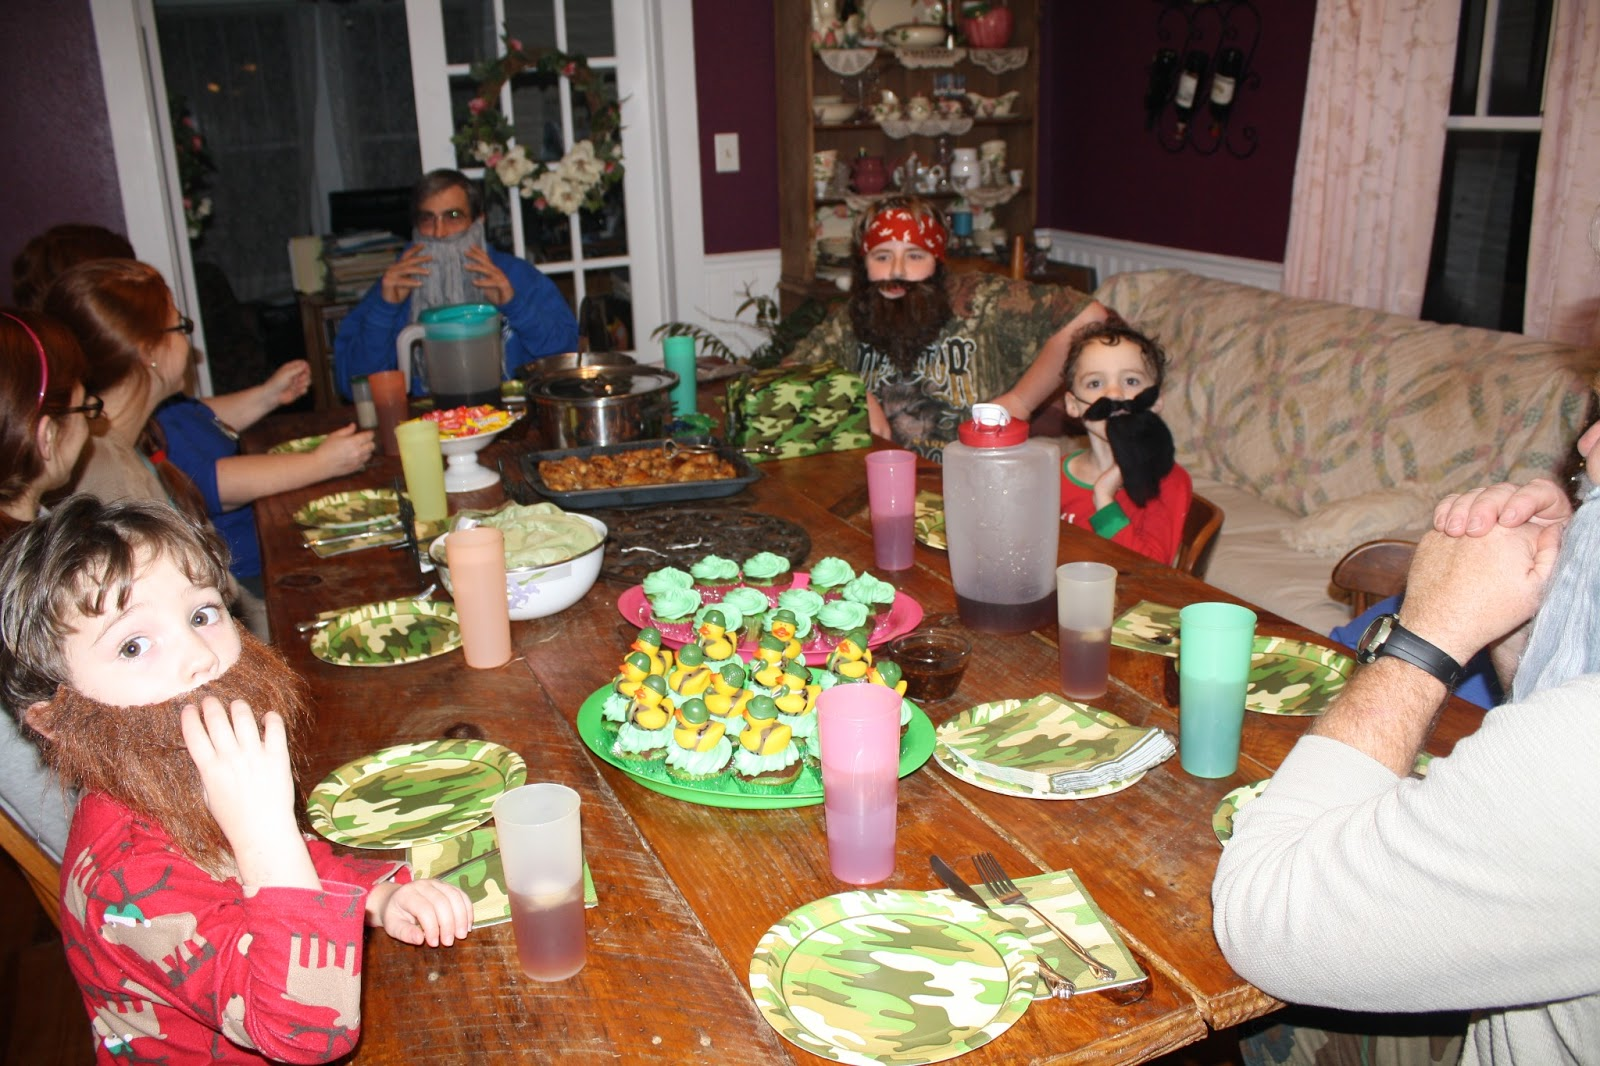 gives you some ideas and you have a great Duck Dynasty party as well